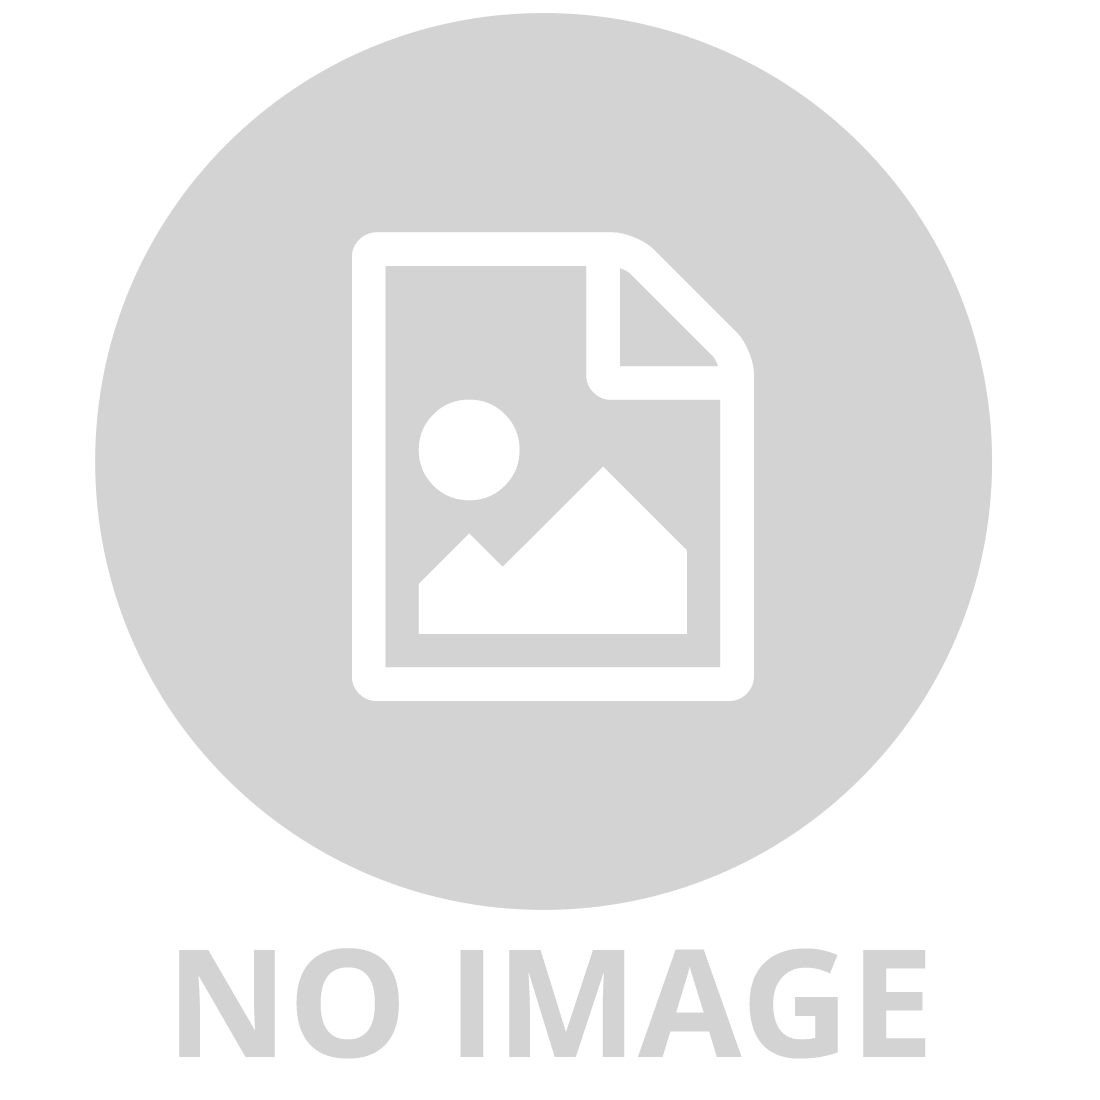 EXT-002 LED Aluminium Extrusion 1